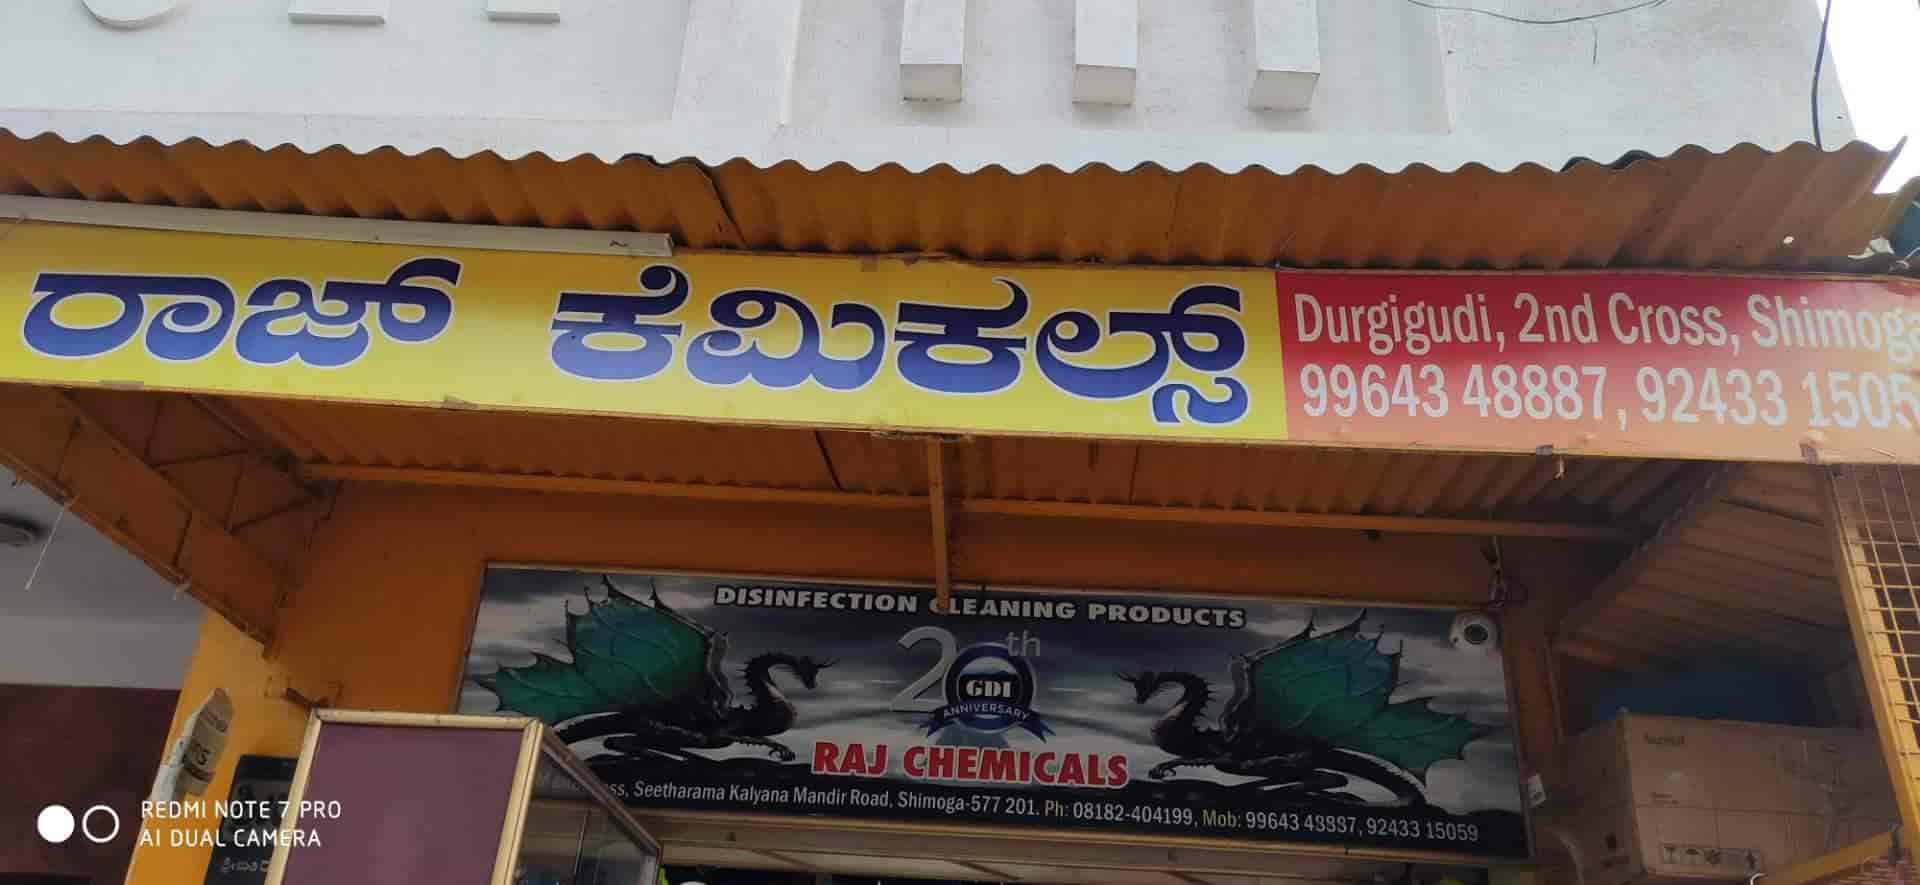 Raj Chemicals, Durgigudi - Housekeeping Product Dealers in